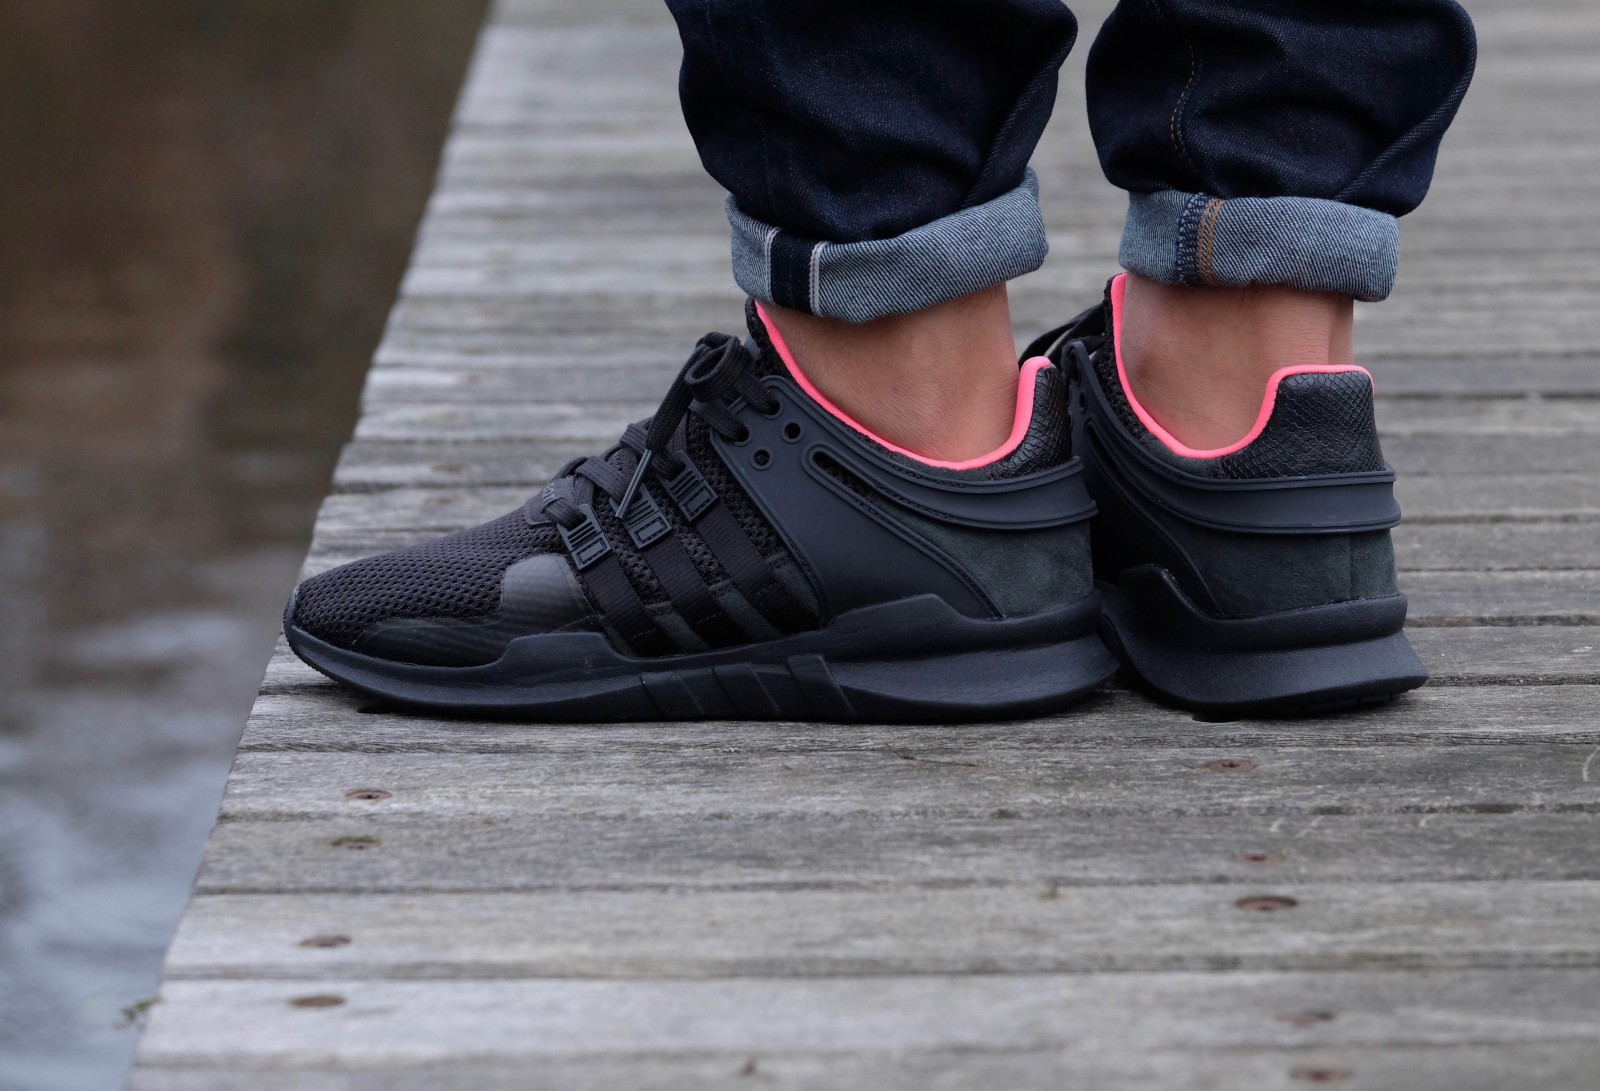 Adidas Originals EQT Support 93/17 'Glitch Camo' Core Black/White